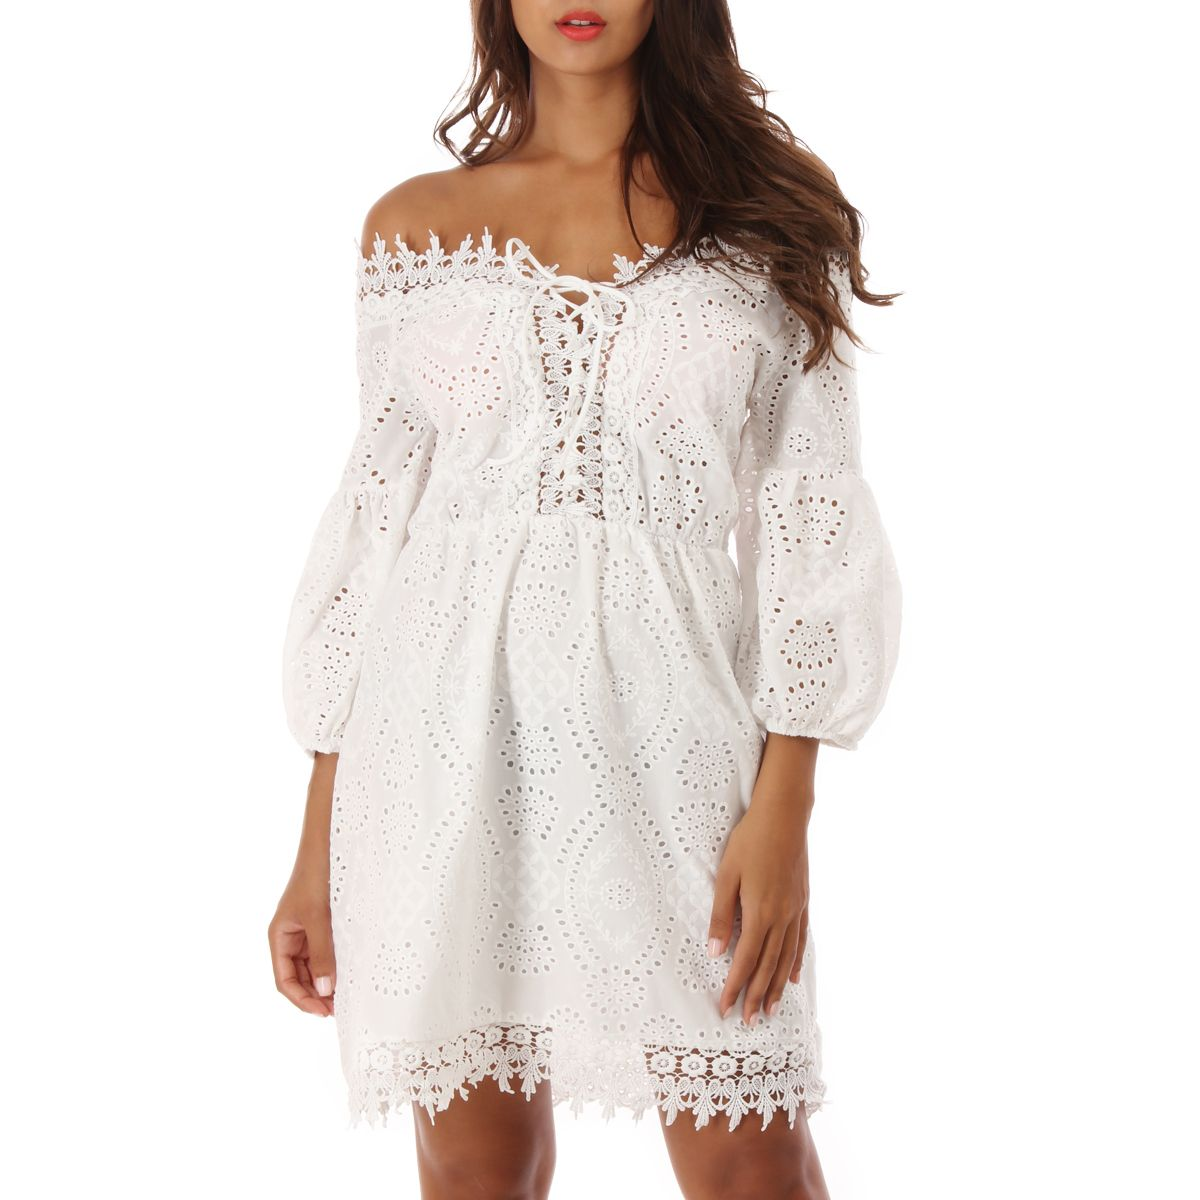 Crochet Broderie Et À Anglaise Robe Blanche thsdQr